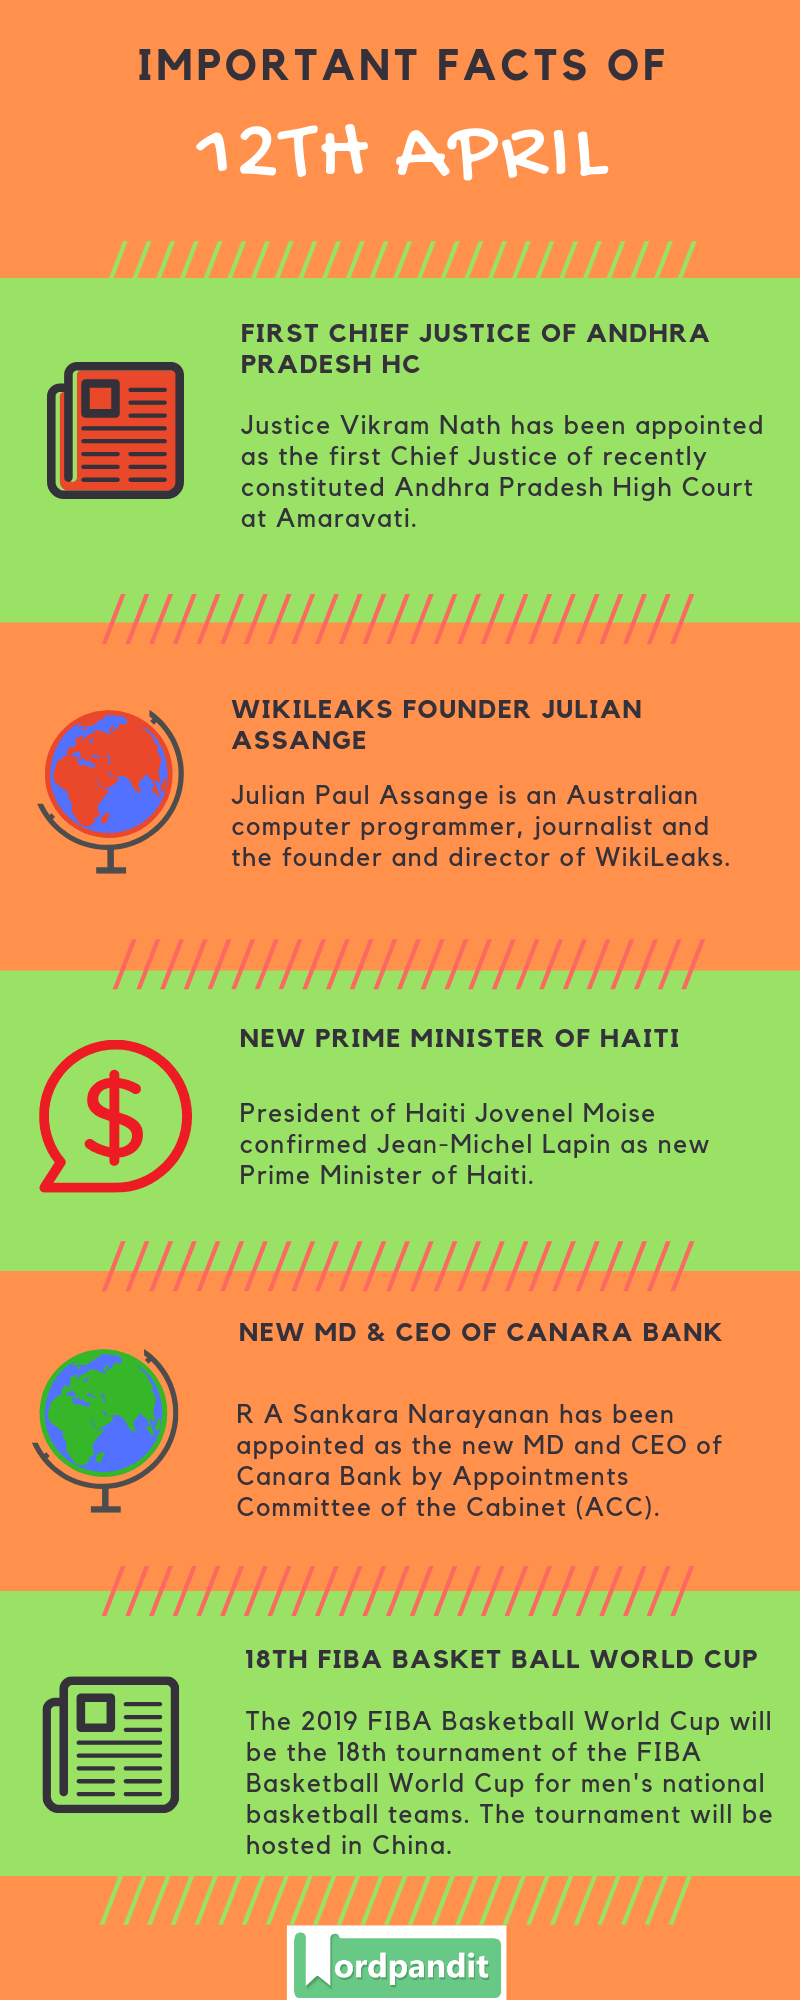 Daily Current Affairs 12 April 2019 Current Affairs Quiz 12 April 2019 Current Affairs Infographic